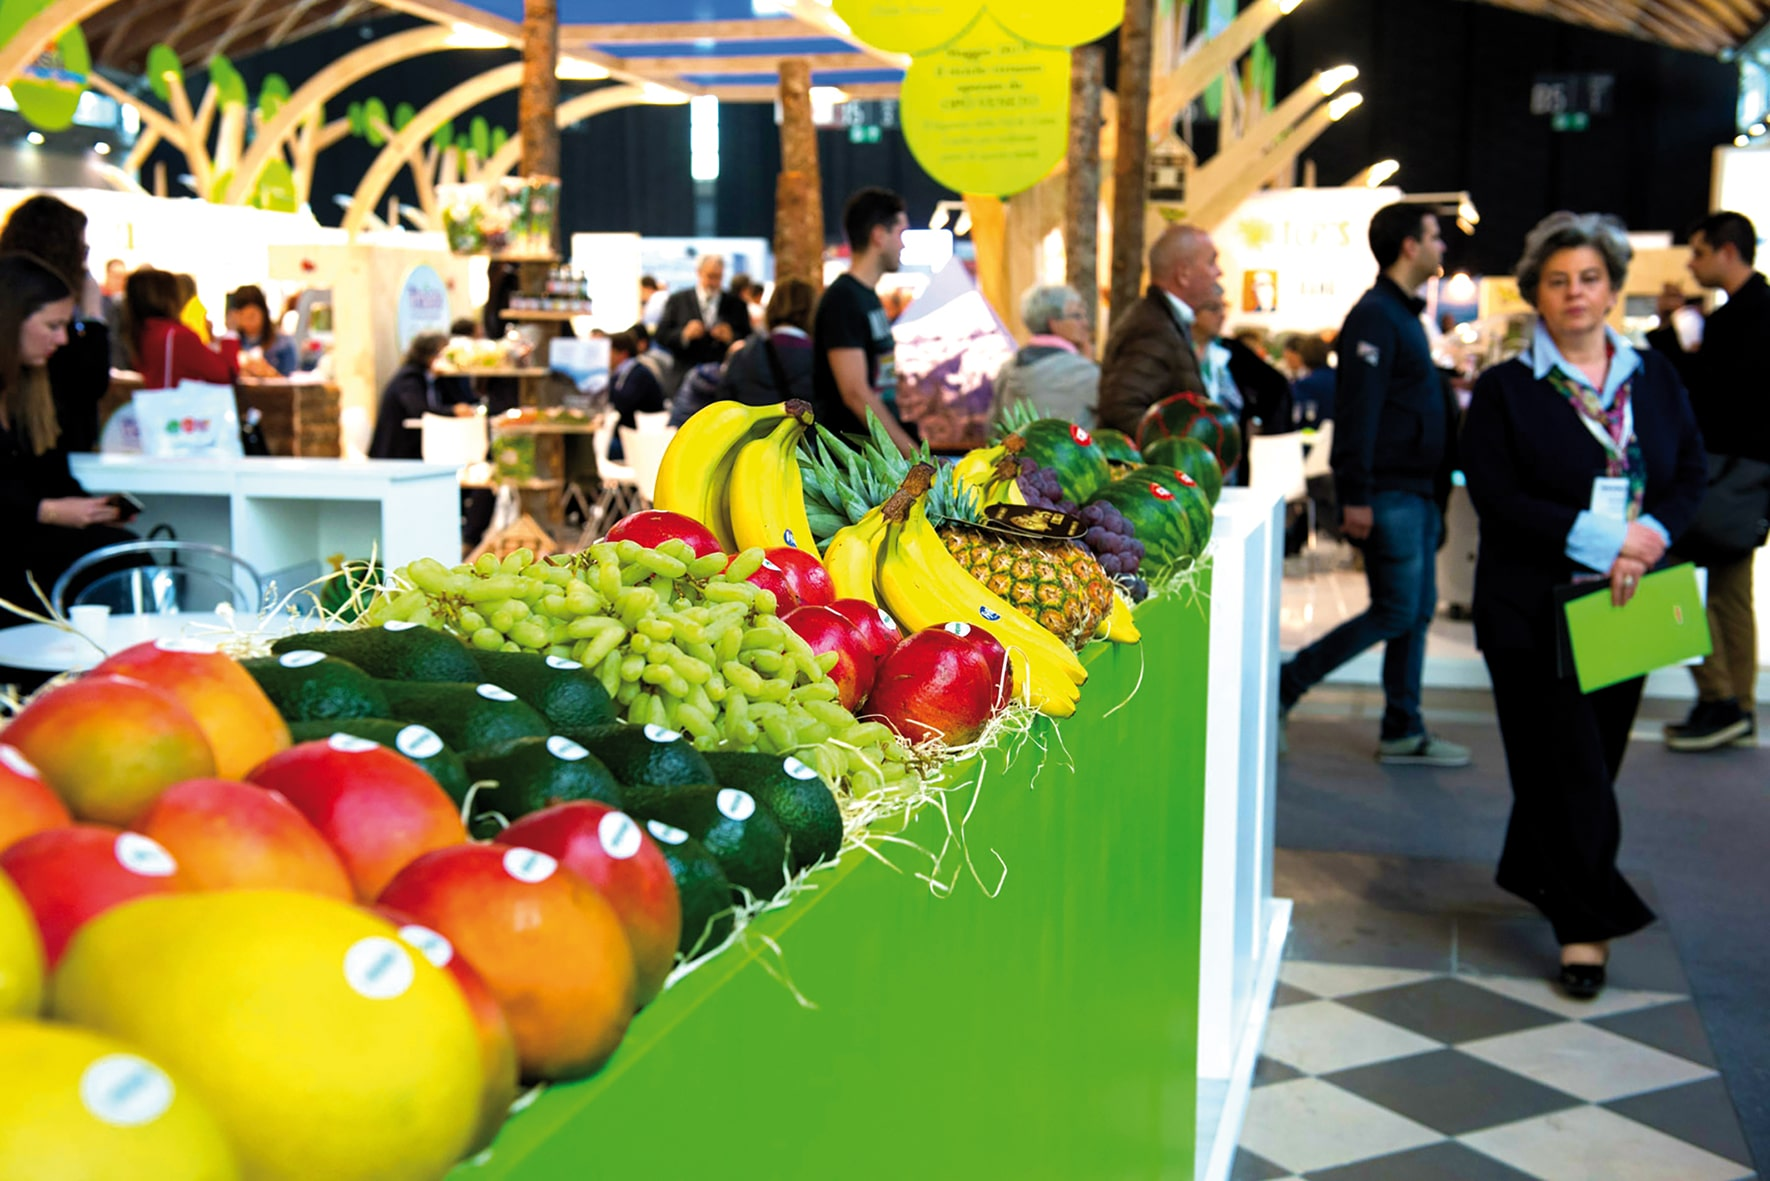 Macfrut 2020, the Tropical Fruit Congress will be dedicated to avocados